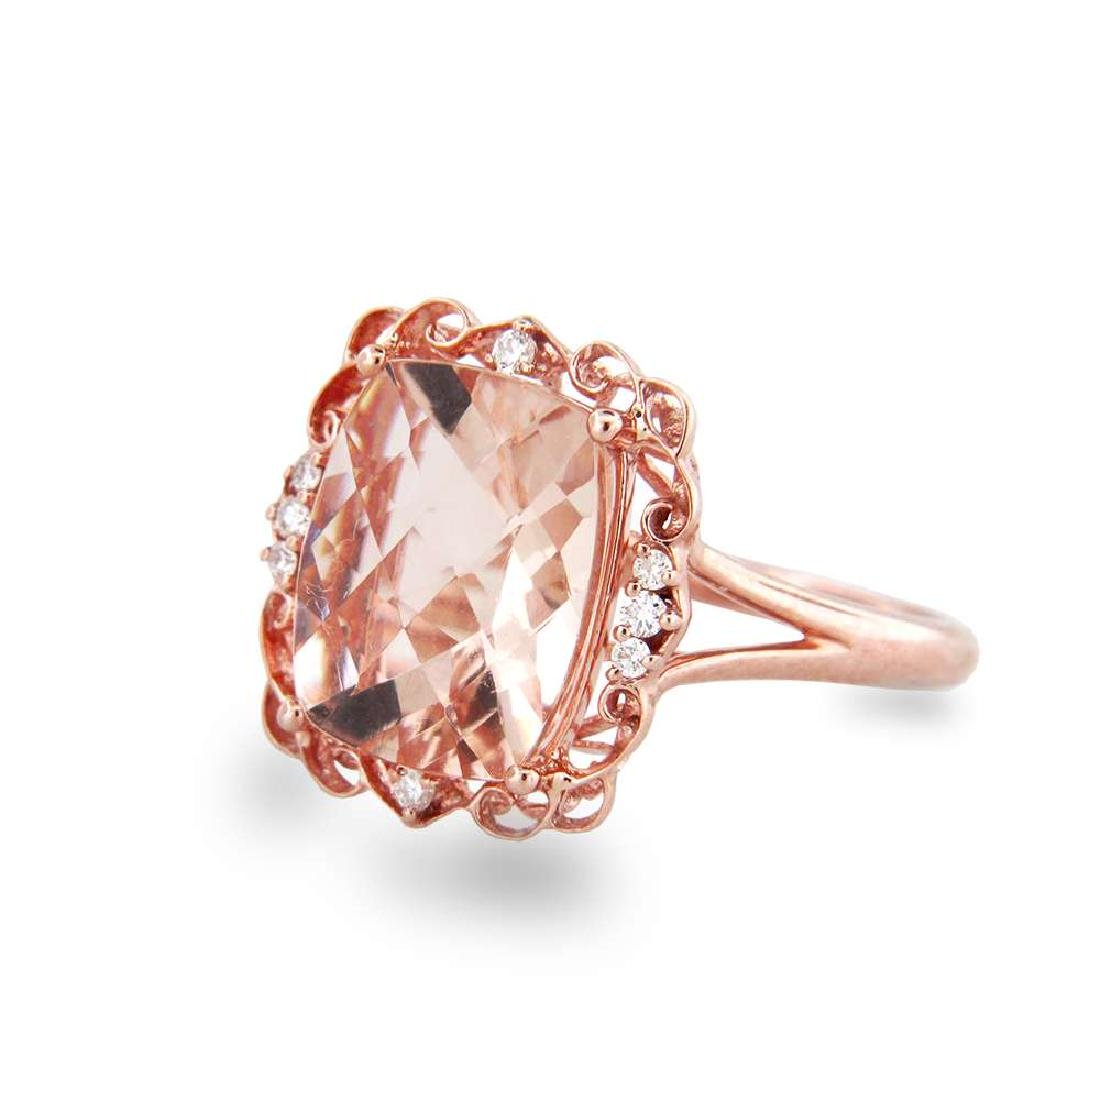 4.12cttw Morganite and Diamond Ring in 14k Rose Gold